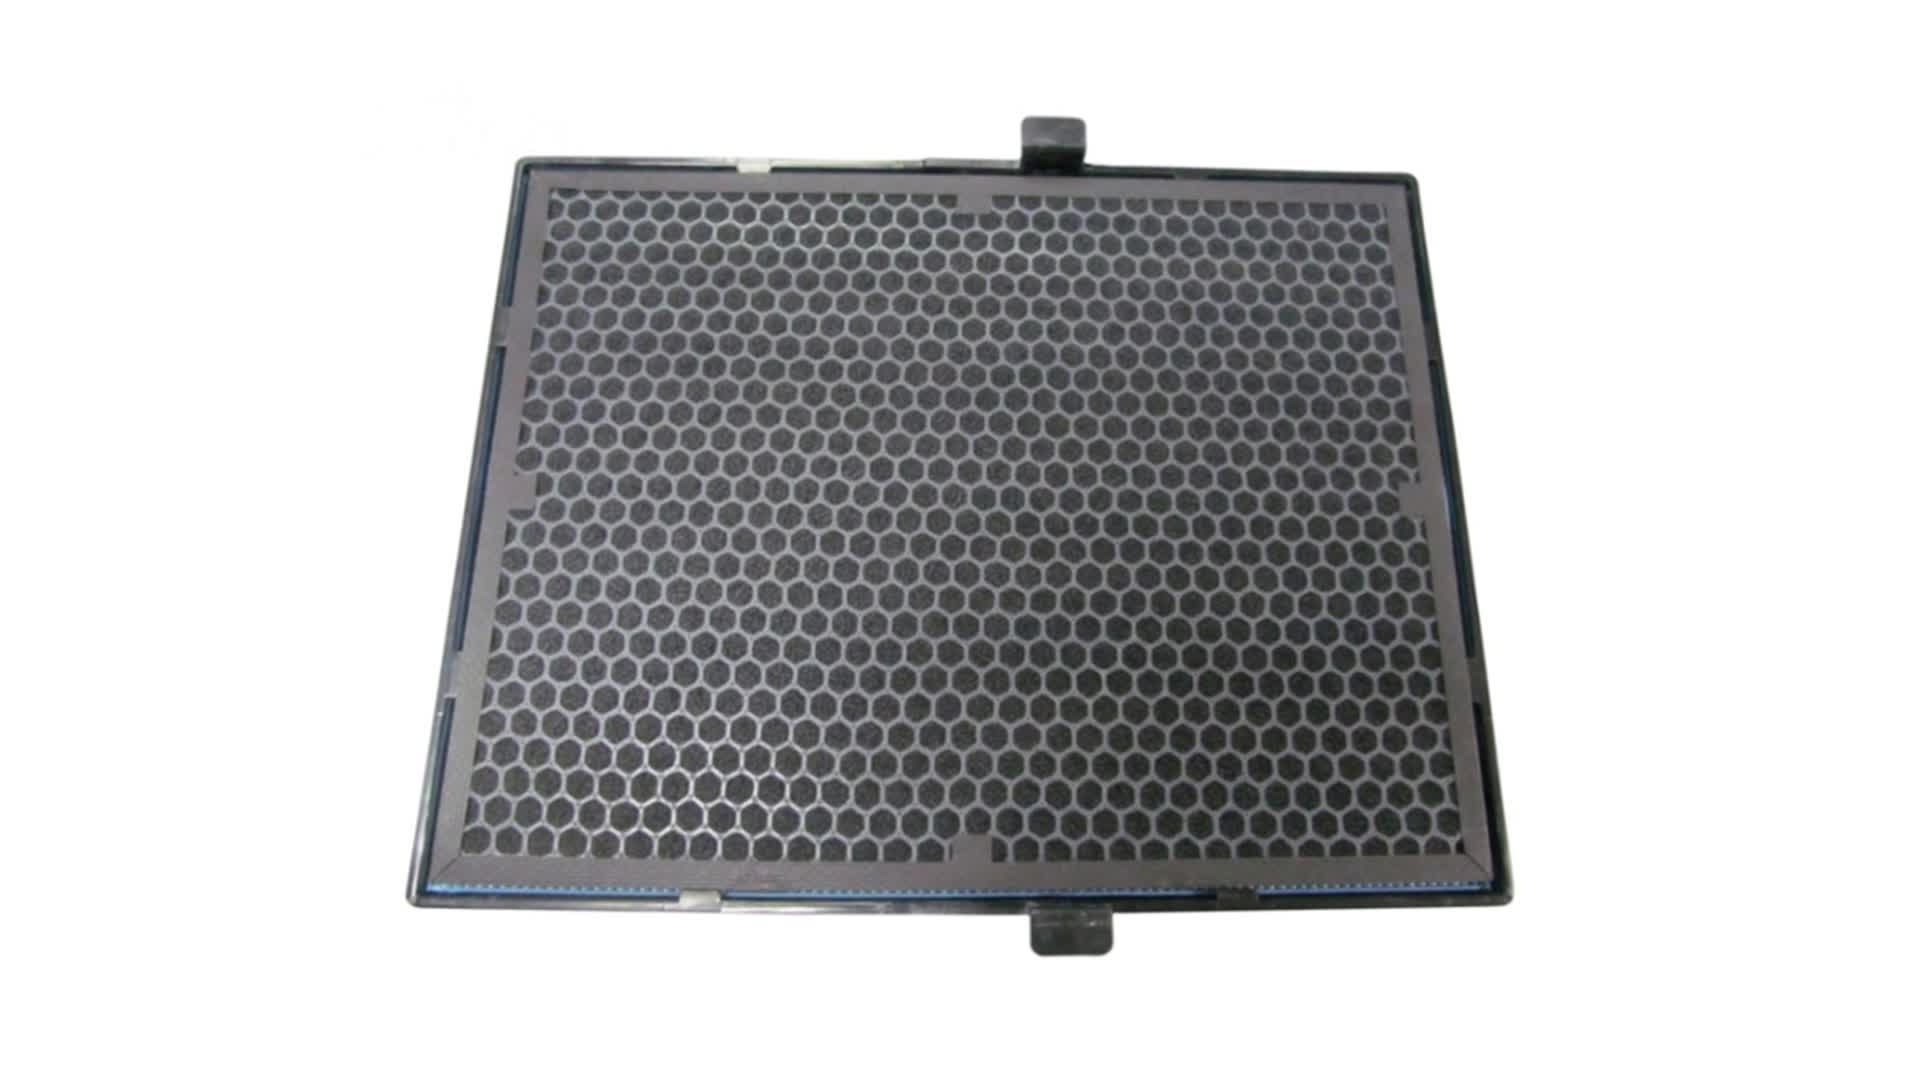 Activated Carbon Air Filter for Air Purifier Parts of BioGS Rait Air Cleaner